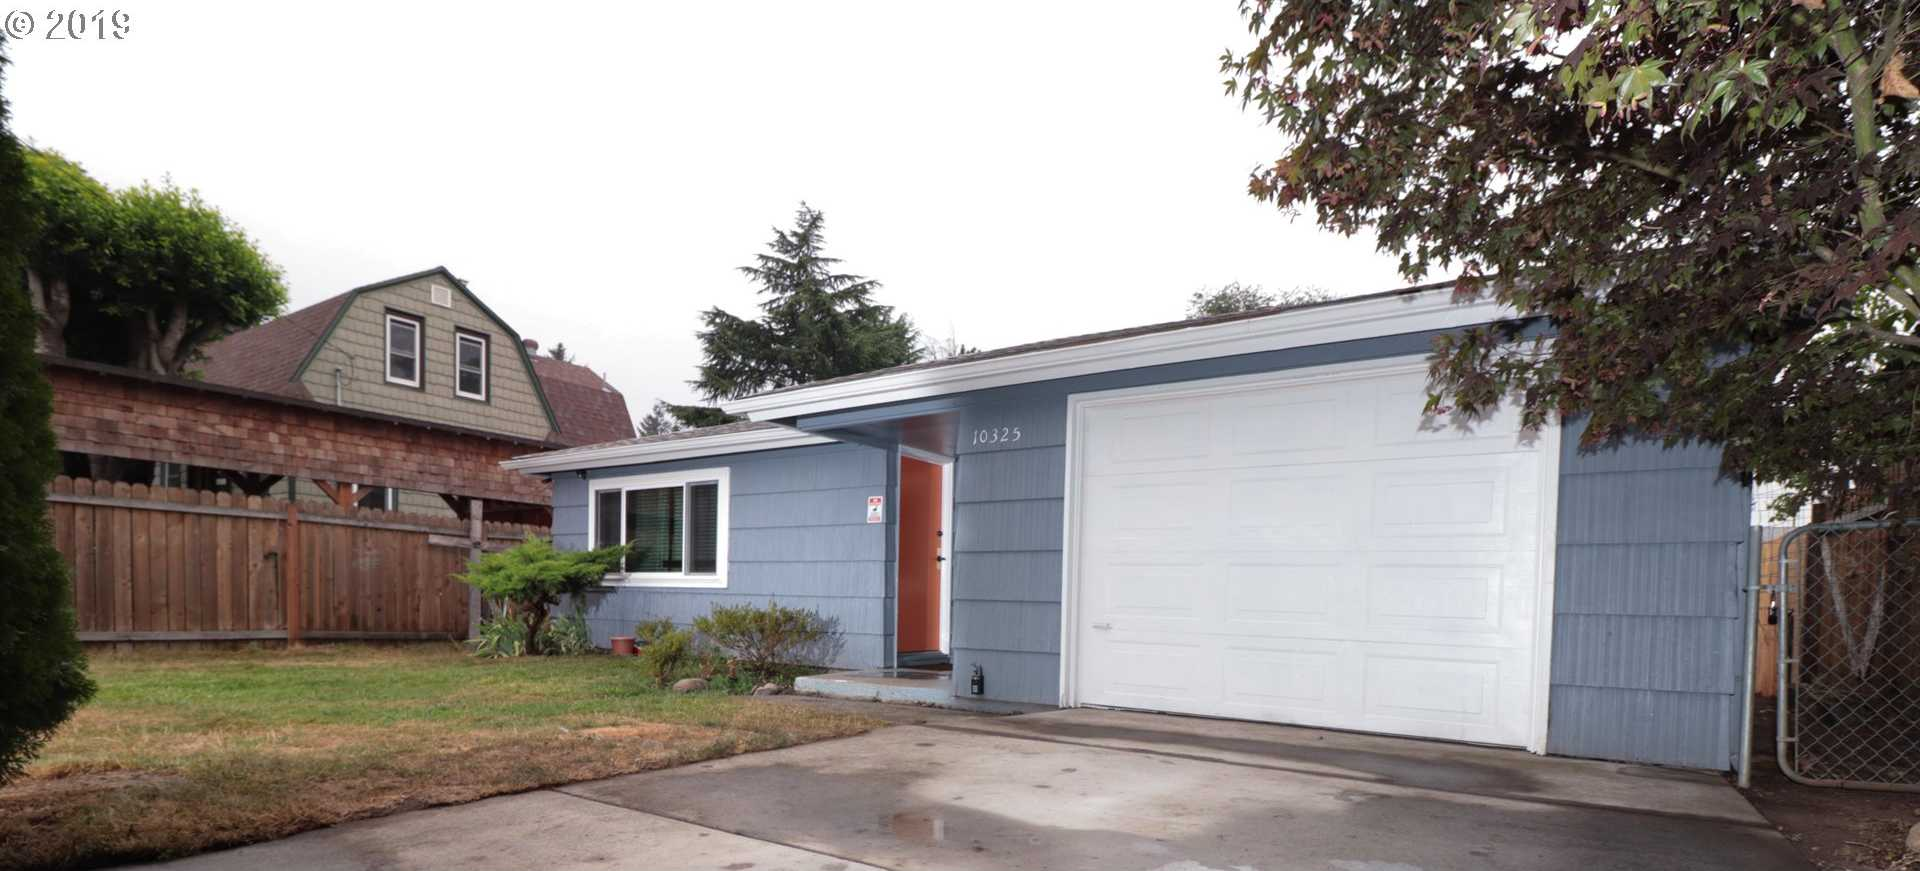 $285,000 - 3Br/1Ba -  for Sale in Portland